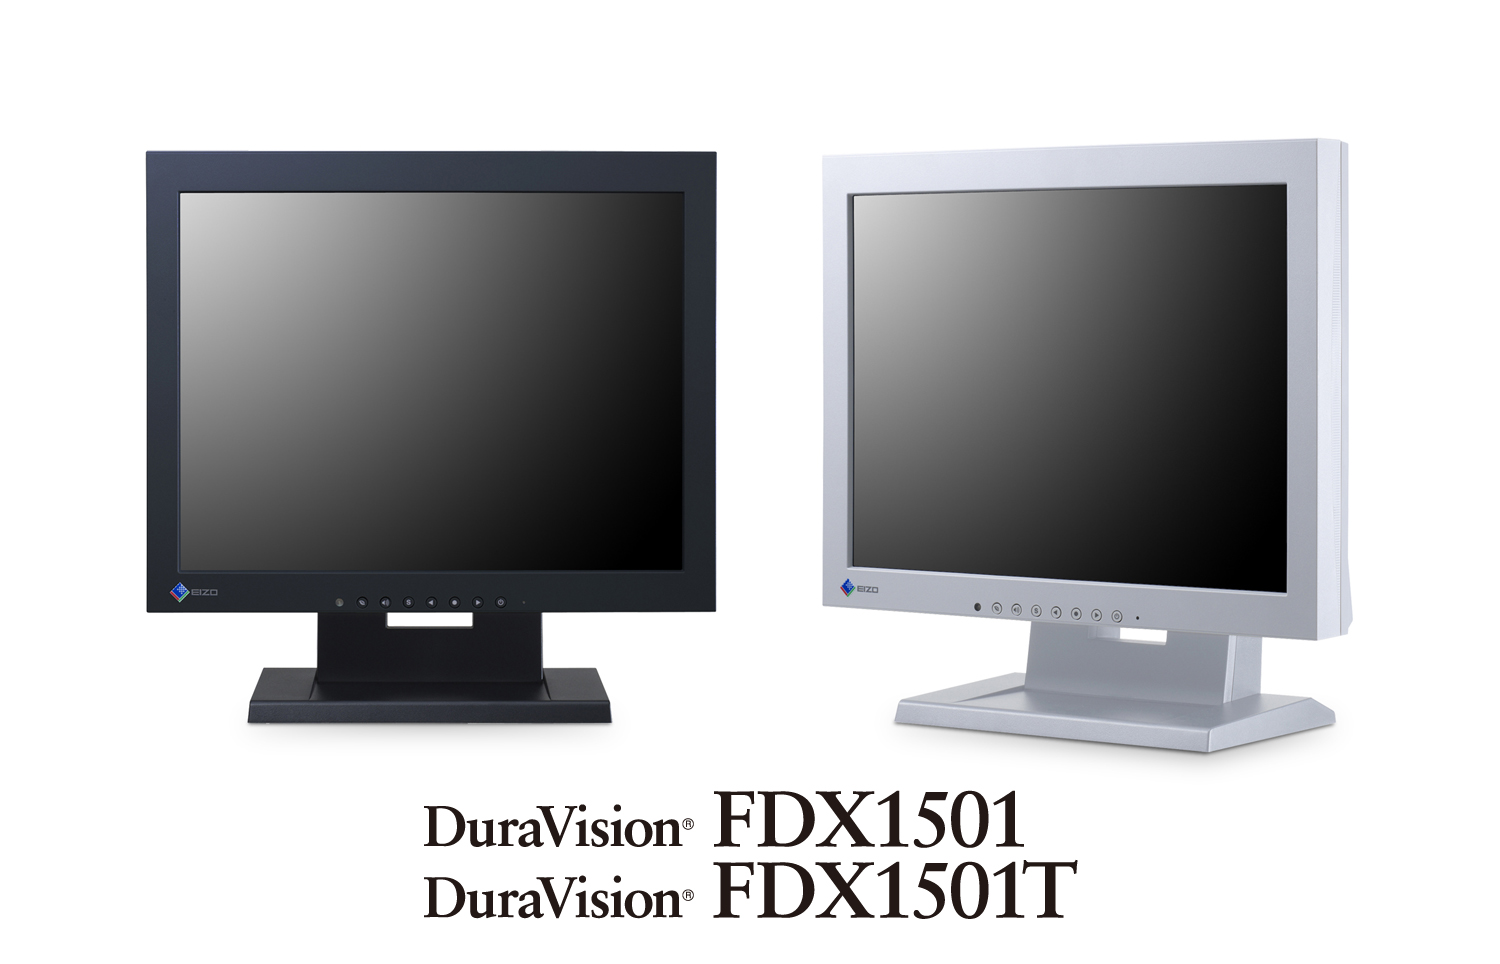 DuraVision FDX1501T, Download